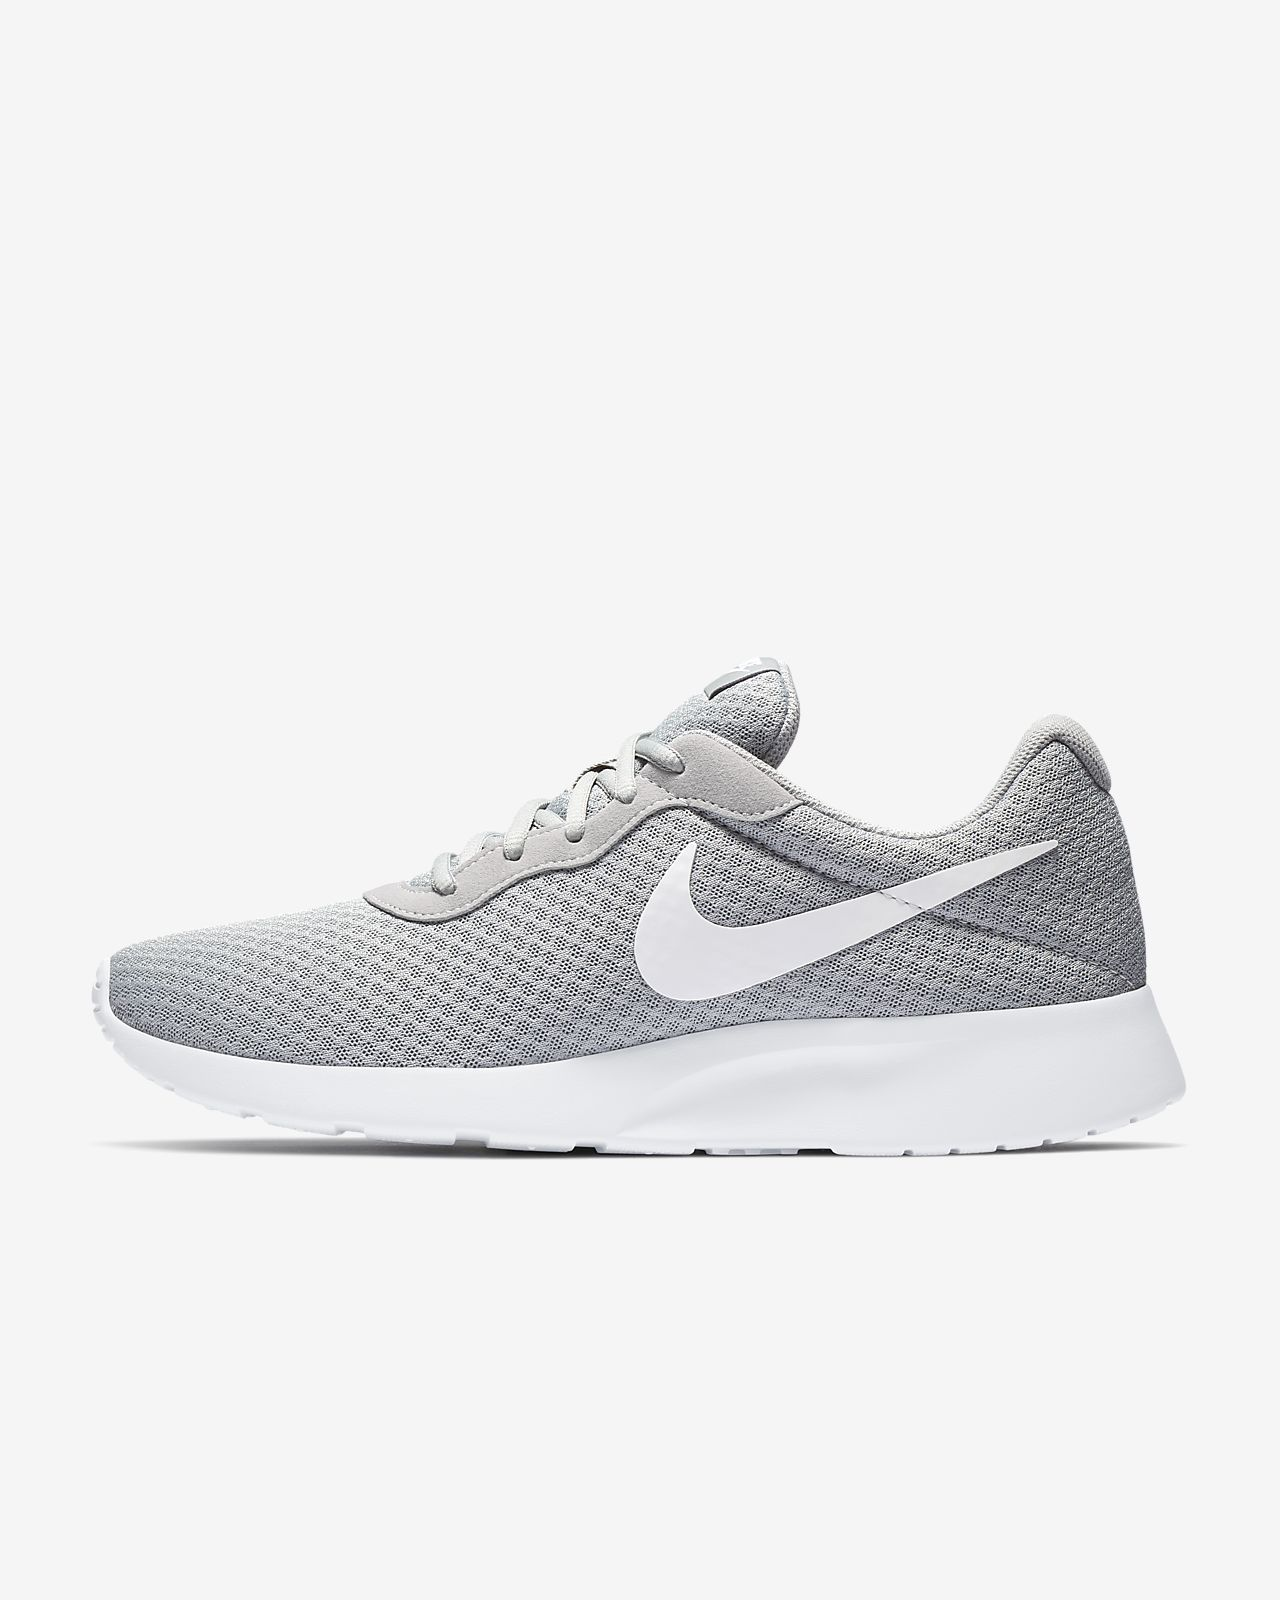 1fe18c3ee604 Chaussure Nike Tanjun pour Homme. Nike.com BE